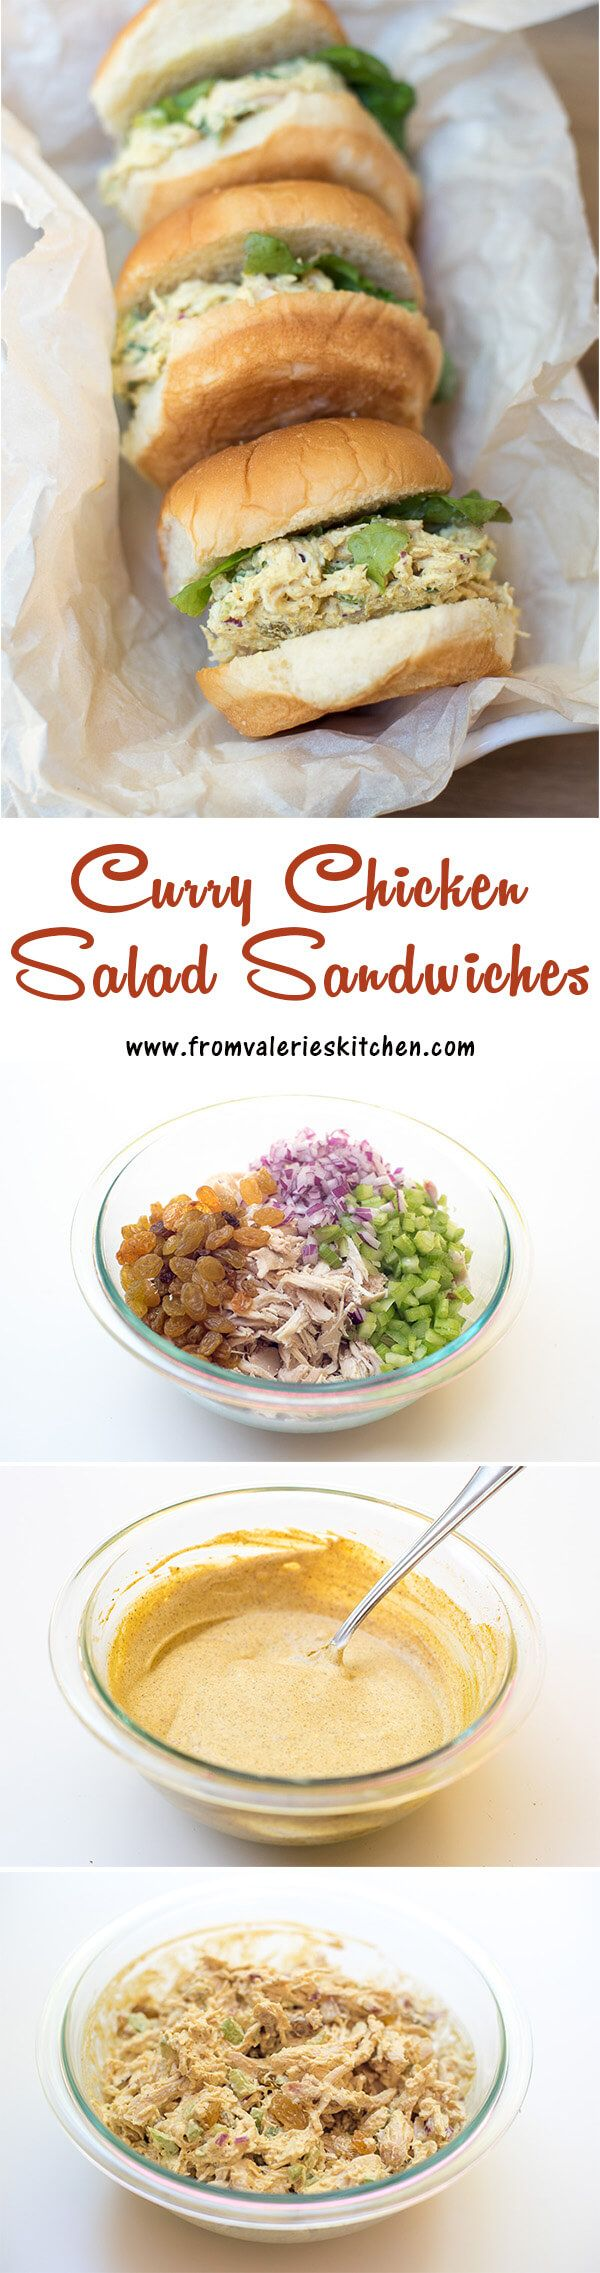 The creamy curry dressing, the sweet, chewy bite of golden raisins, and a bit of texture from finely diced red onion and celery. It all works together in a glorious way in this delicious Curry Chicken Salad. ~ http://www.fromvalerieskitchen.com